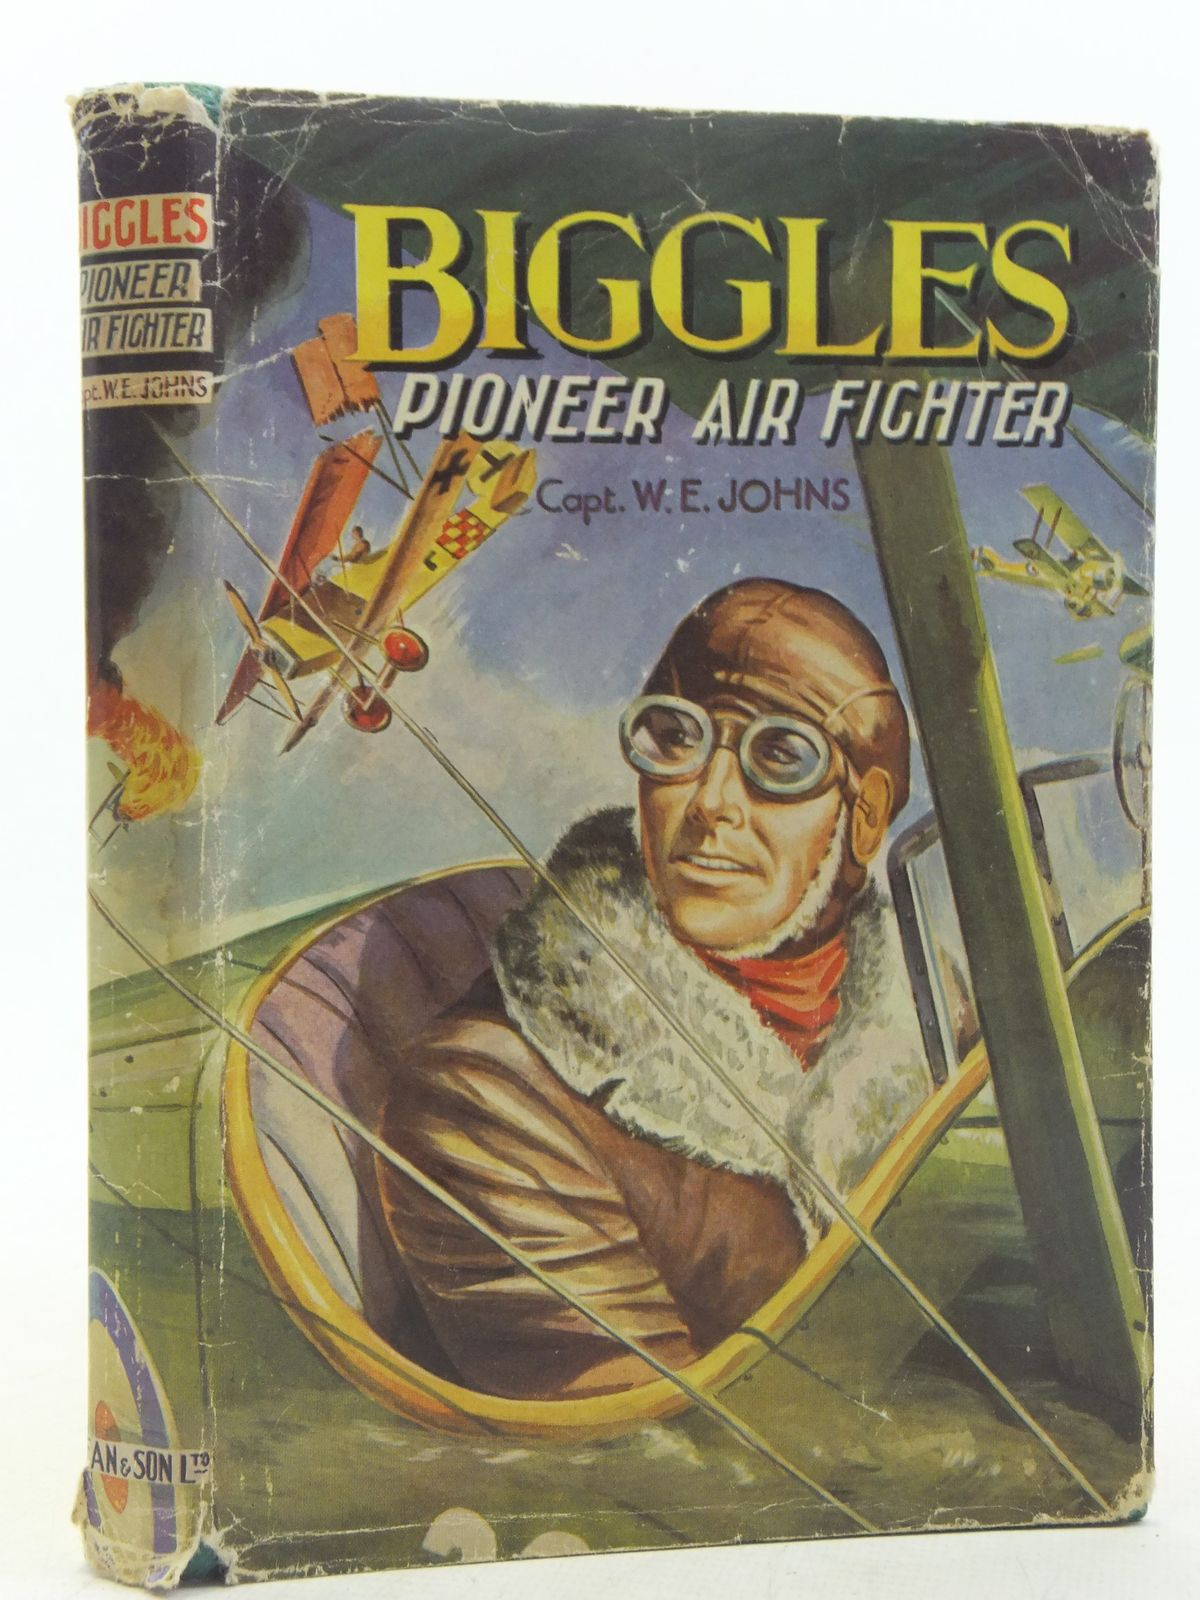 Photo of BIGGLES PIONEER AIR FIGHTER written by Johns, W.E. published by Dean & Son Ltd. (STOCK CODE: 2117605)  for sale by Stella & Rose's Books